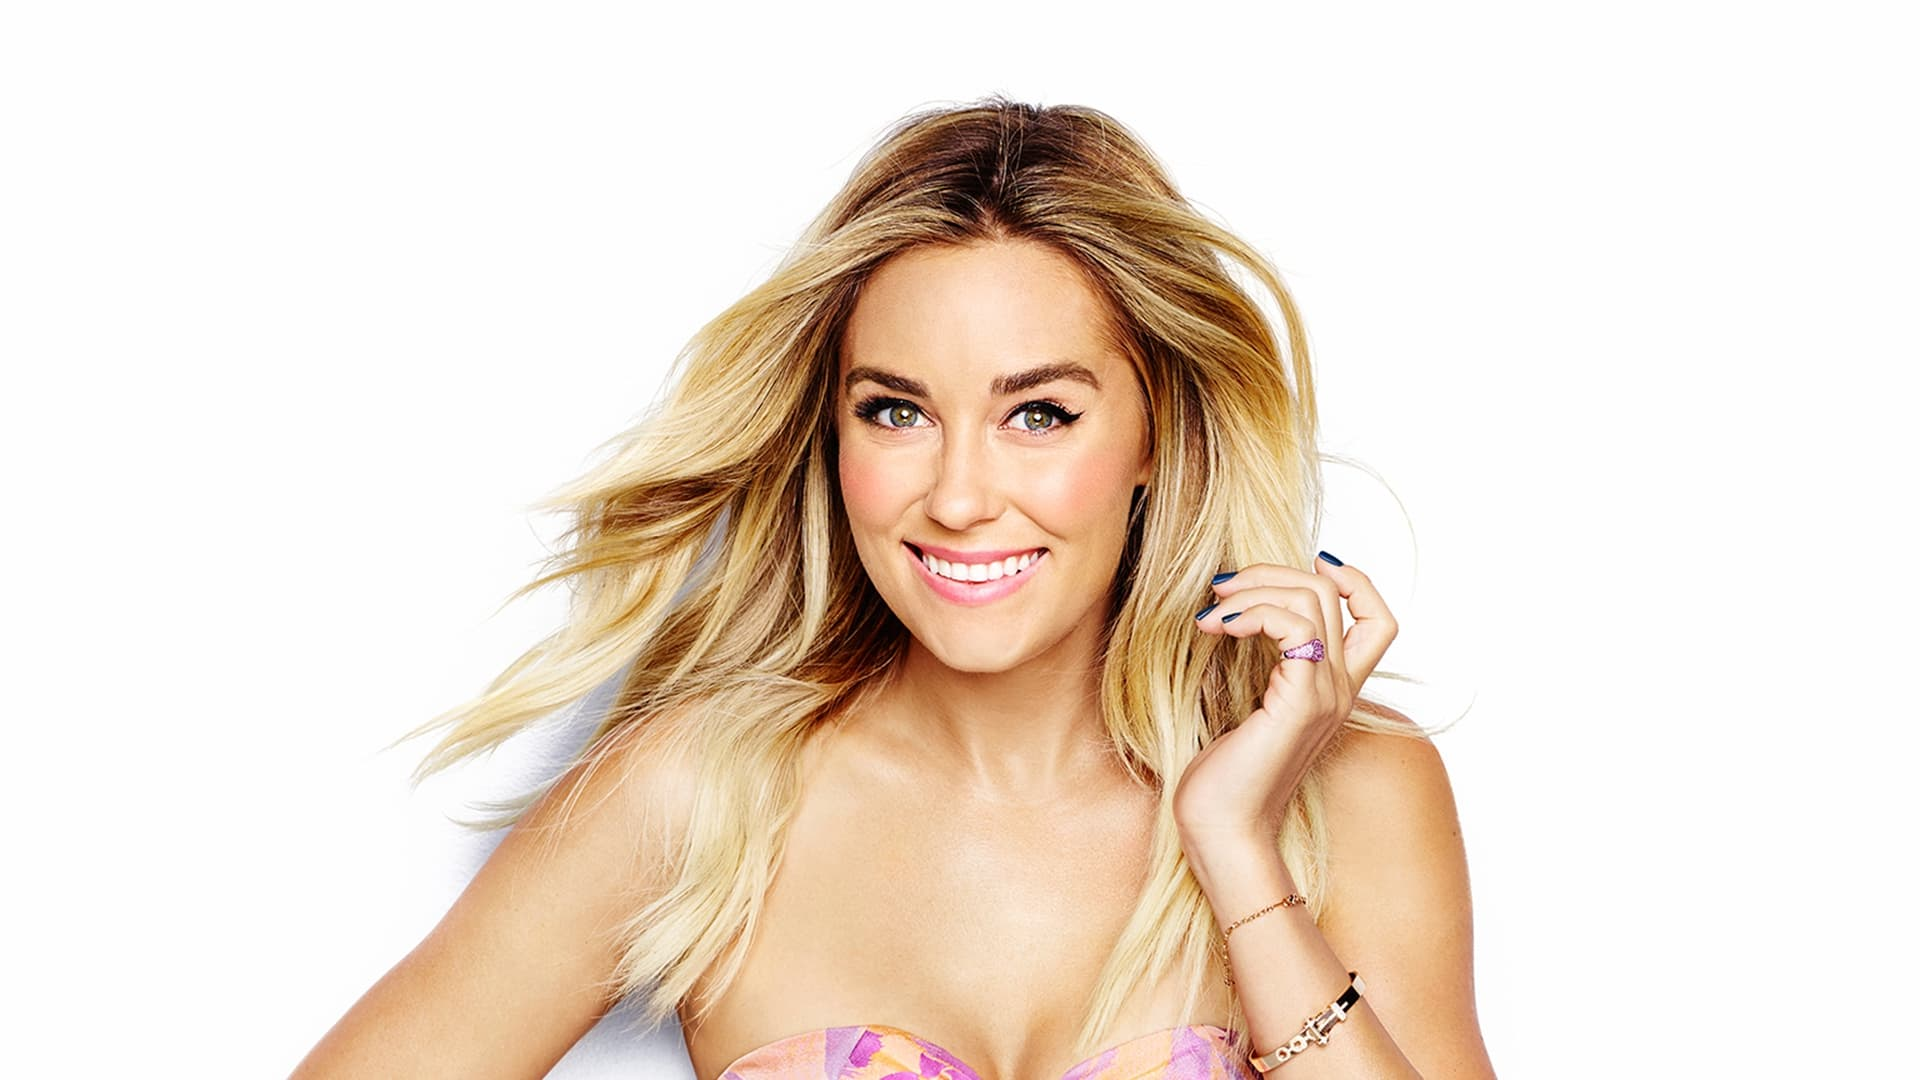 Lauren Conrad High Quality wallpaper 1920x1080